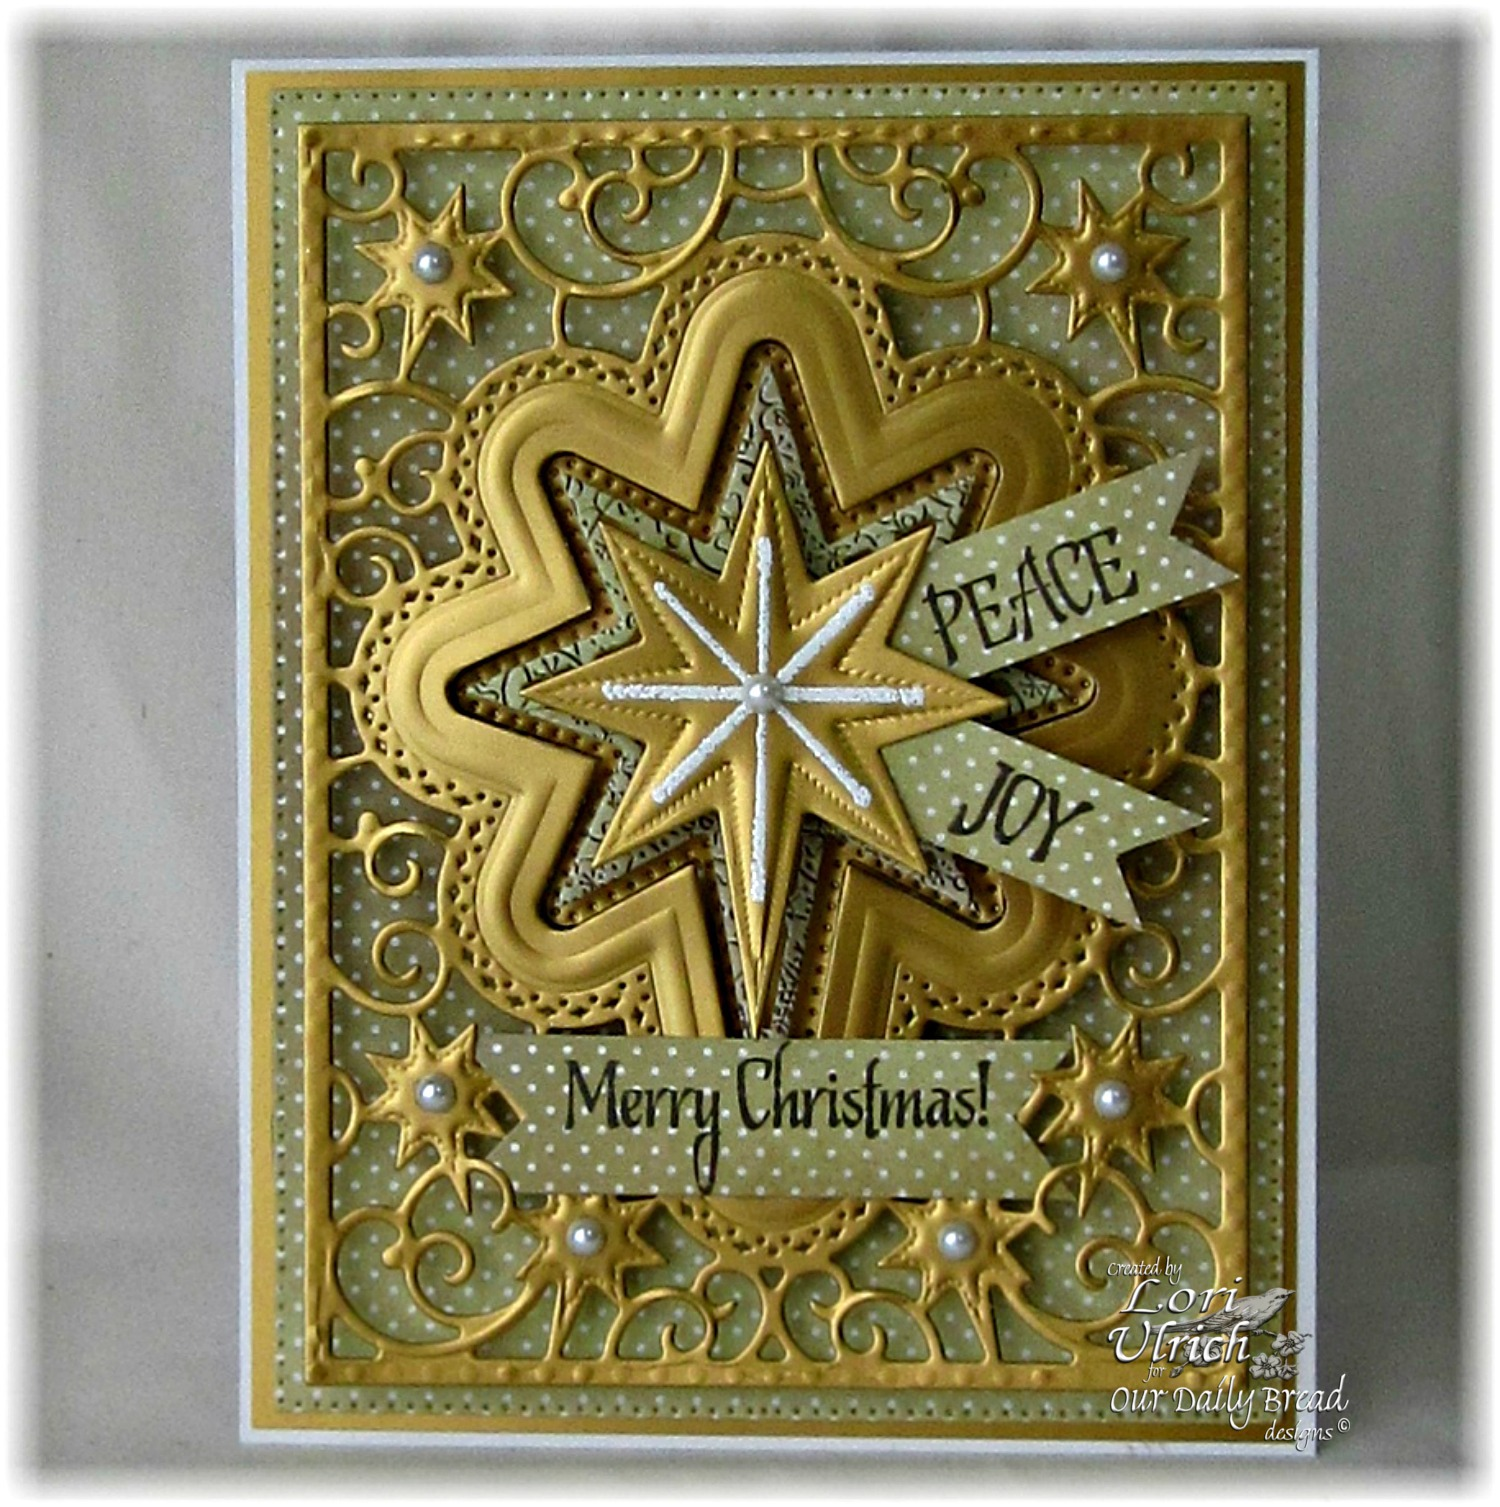 Stamps - Our Daily Bread Designs His Birth, Come Let Us Adore Him, ODBD Winter Paper Collection 2014, ODBD Custom Splendorous Stars Dies, ODBD Custom Flourished Star Pattern Die